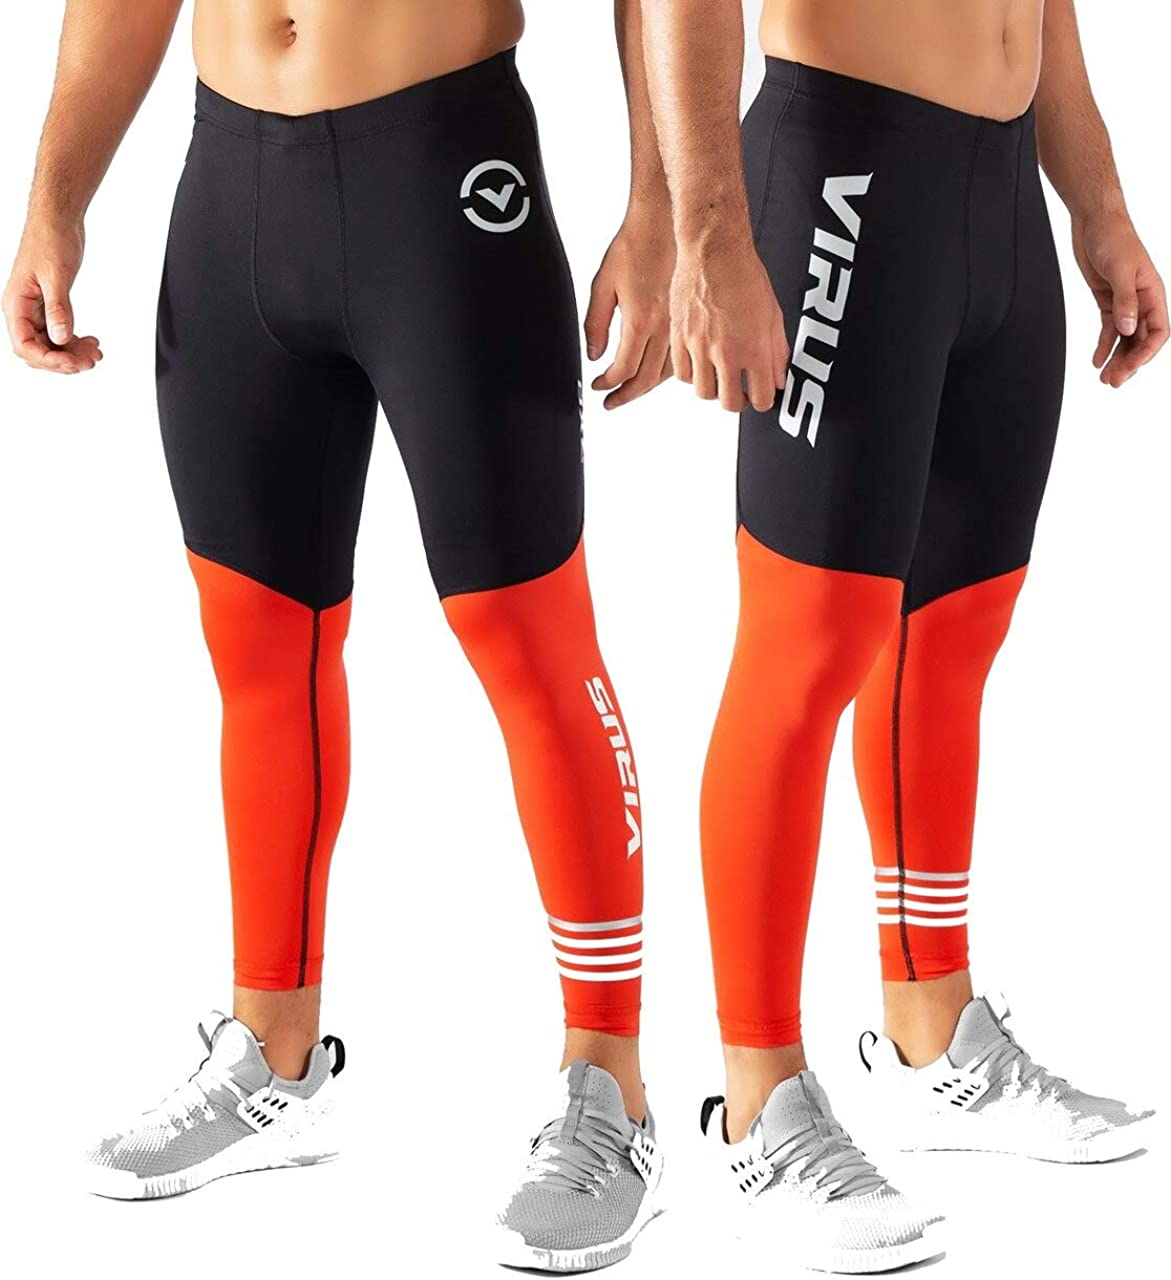 Virus Mens RX8.5 Stay Cool Compression Pants Black//Blood Orange Black//Blood Orange, X-Large